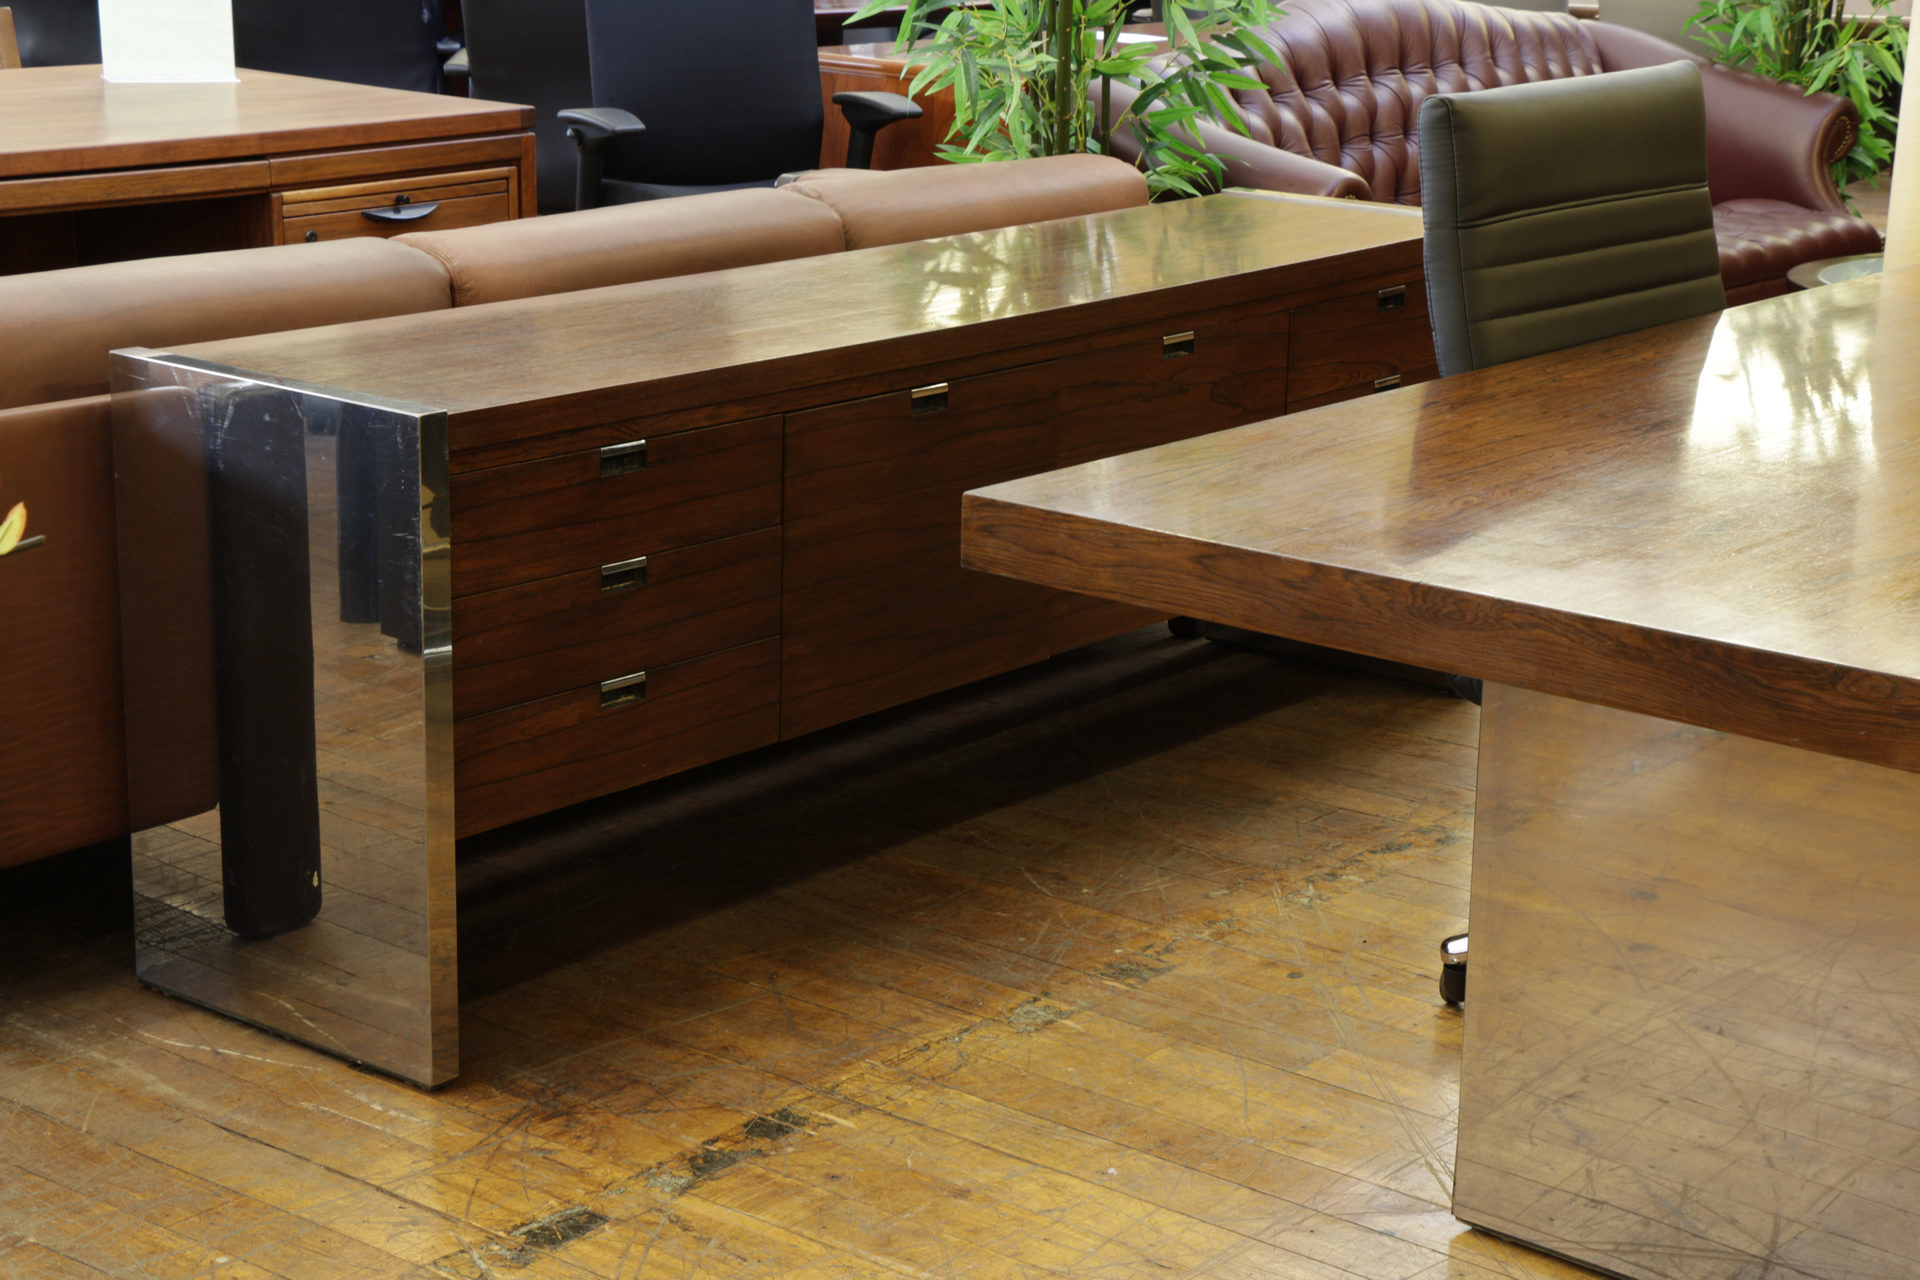 peartreeofficefurniture_peartreeofficefurniture_mg_2036.jpg